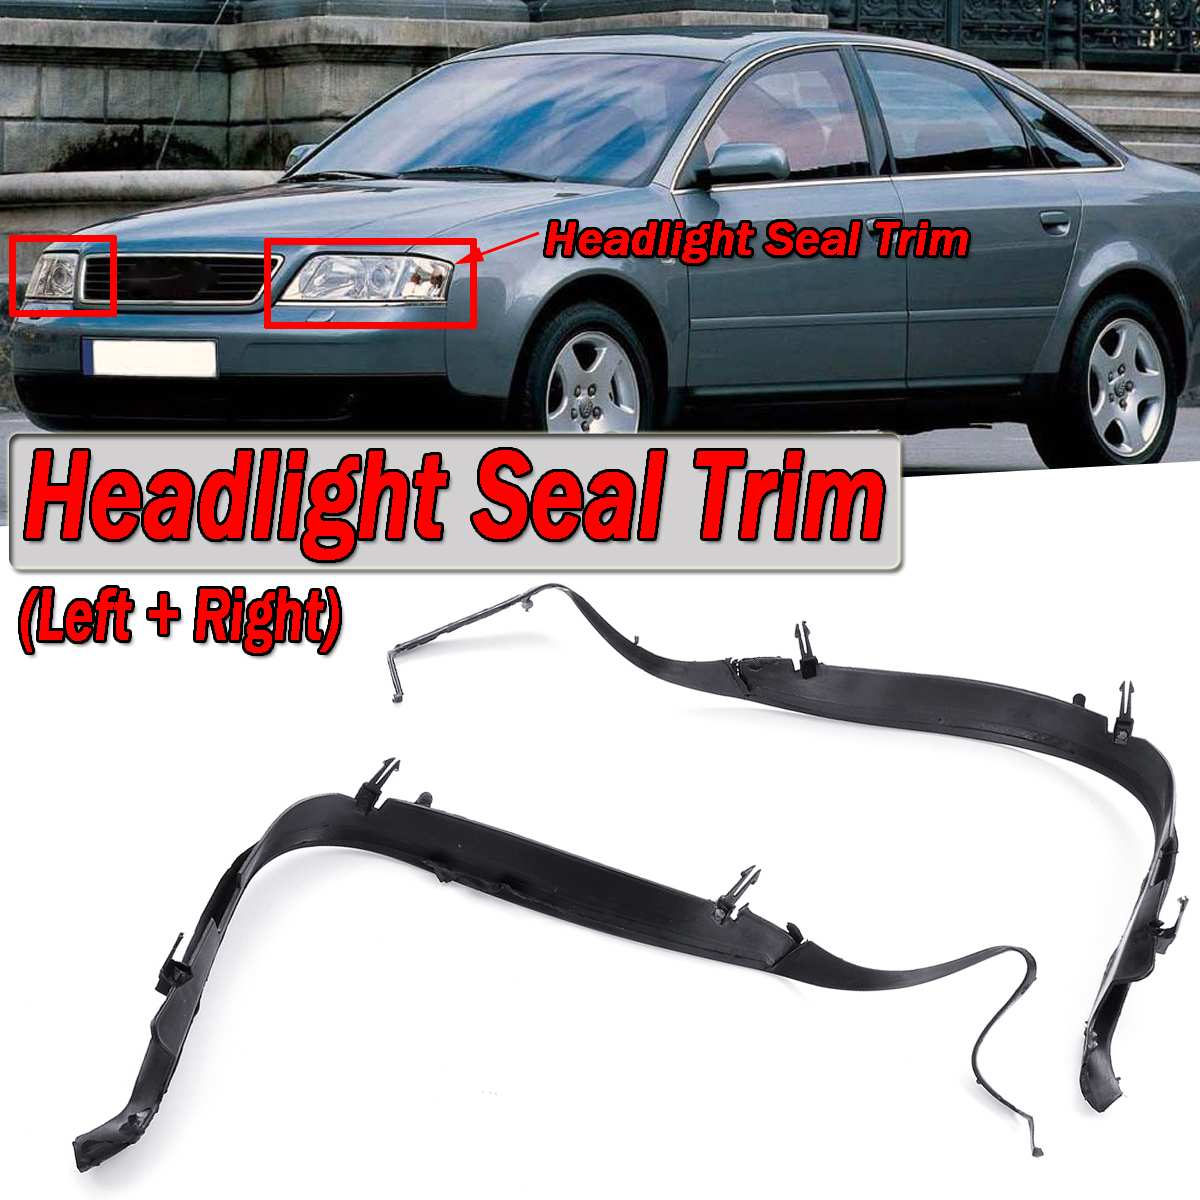 High Quality 2x Car Front Headlight Seal Cover Trim Ring For Audi A6 C5 2002-2005 Facelift 4B0941191A 4B0941192A